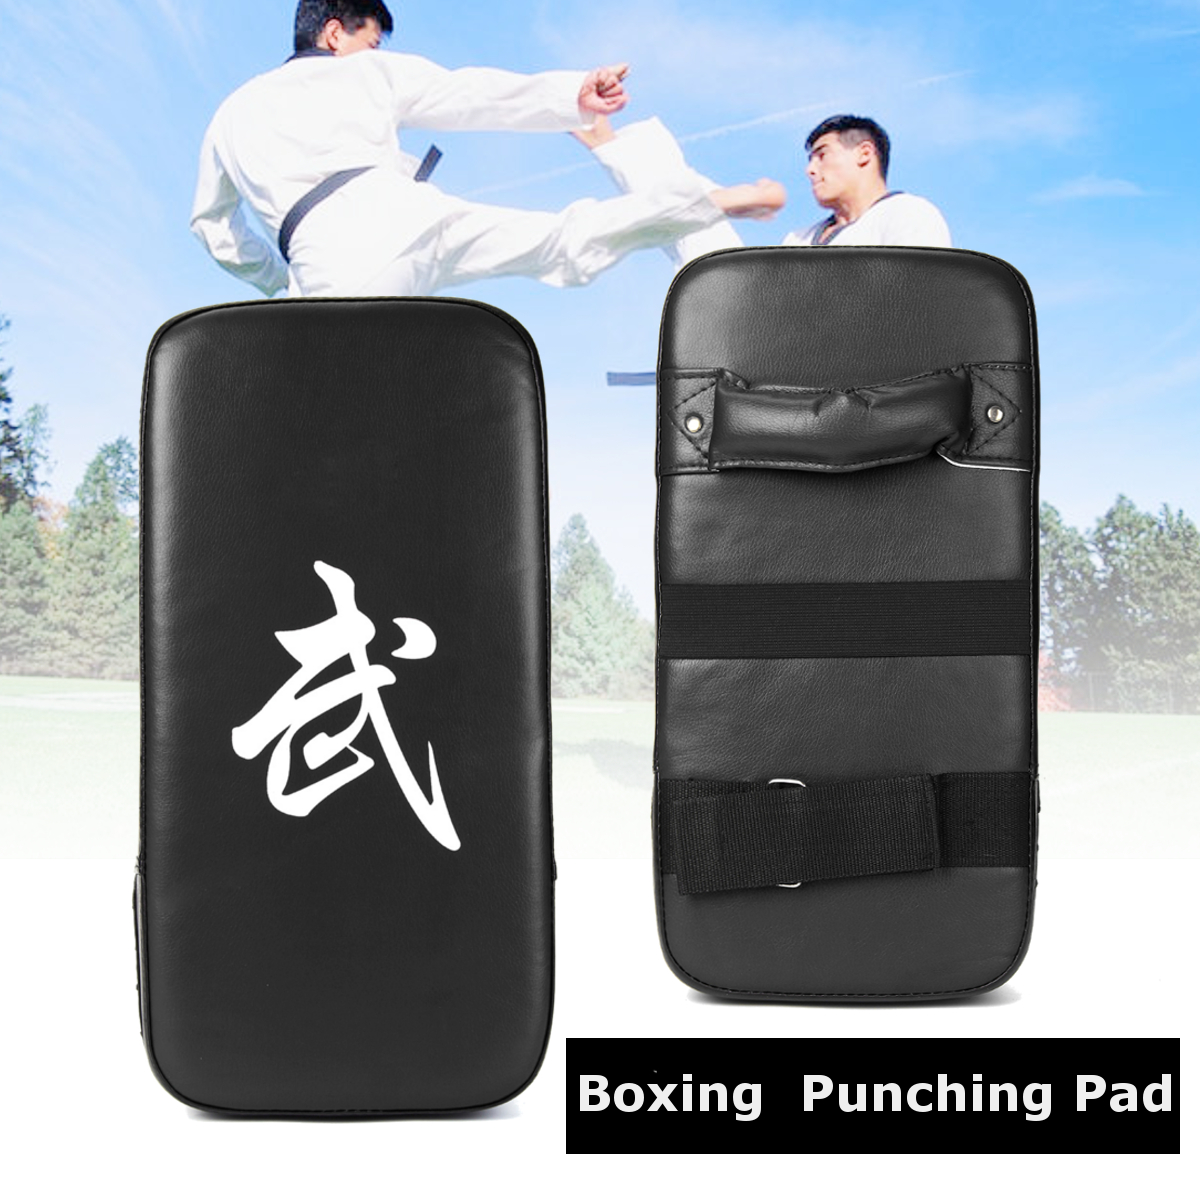 PU Leather Muay Thai MMA Martial Art Boxing Punch Karate Taekwondo Kick Pad Mitts Target Focus Punching Bag Pad Shield Training Red Black